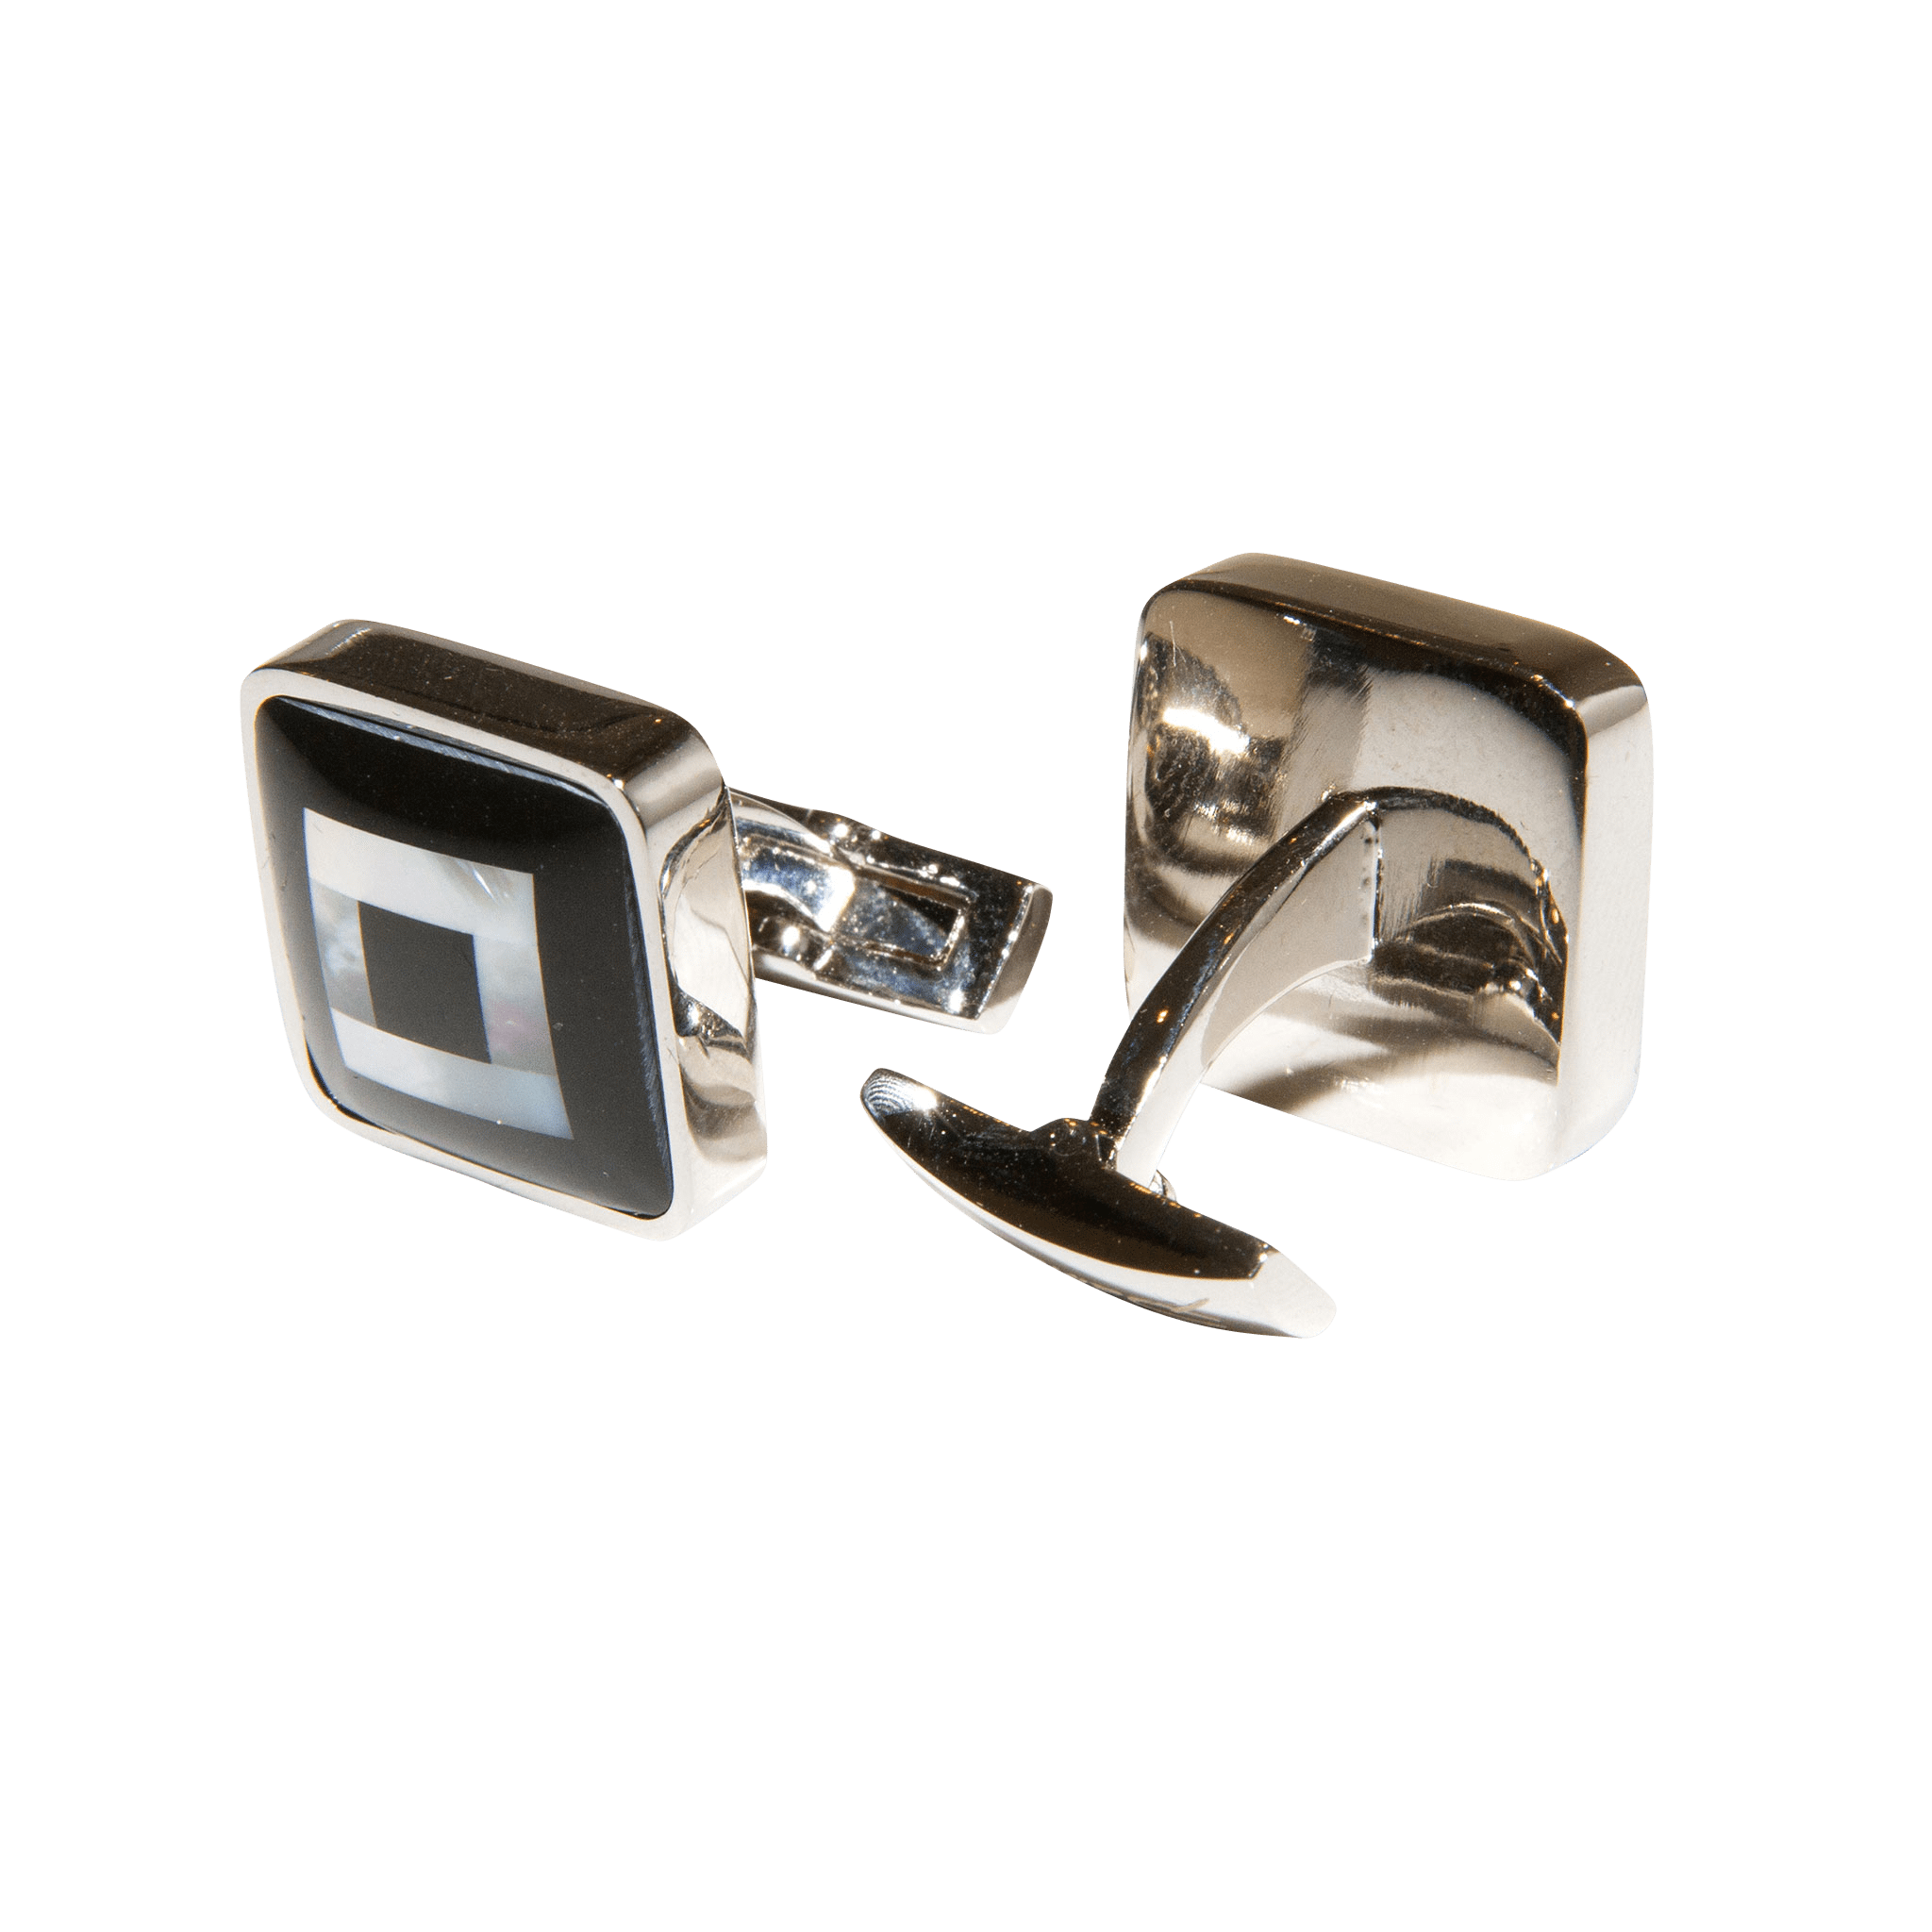 Santamaria Square Onyx and Mother of Pearl Cufflinks